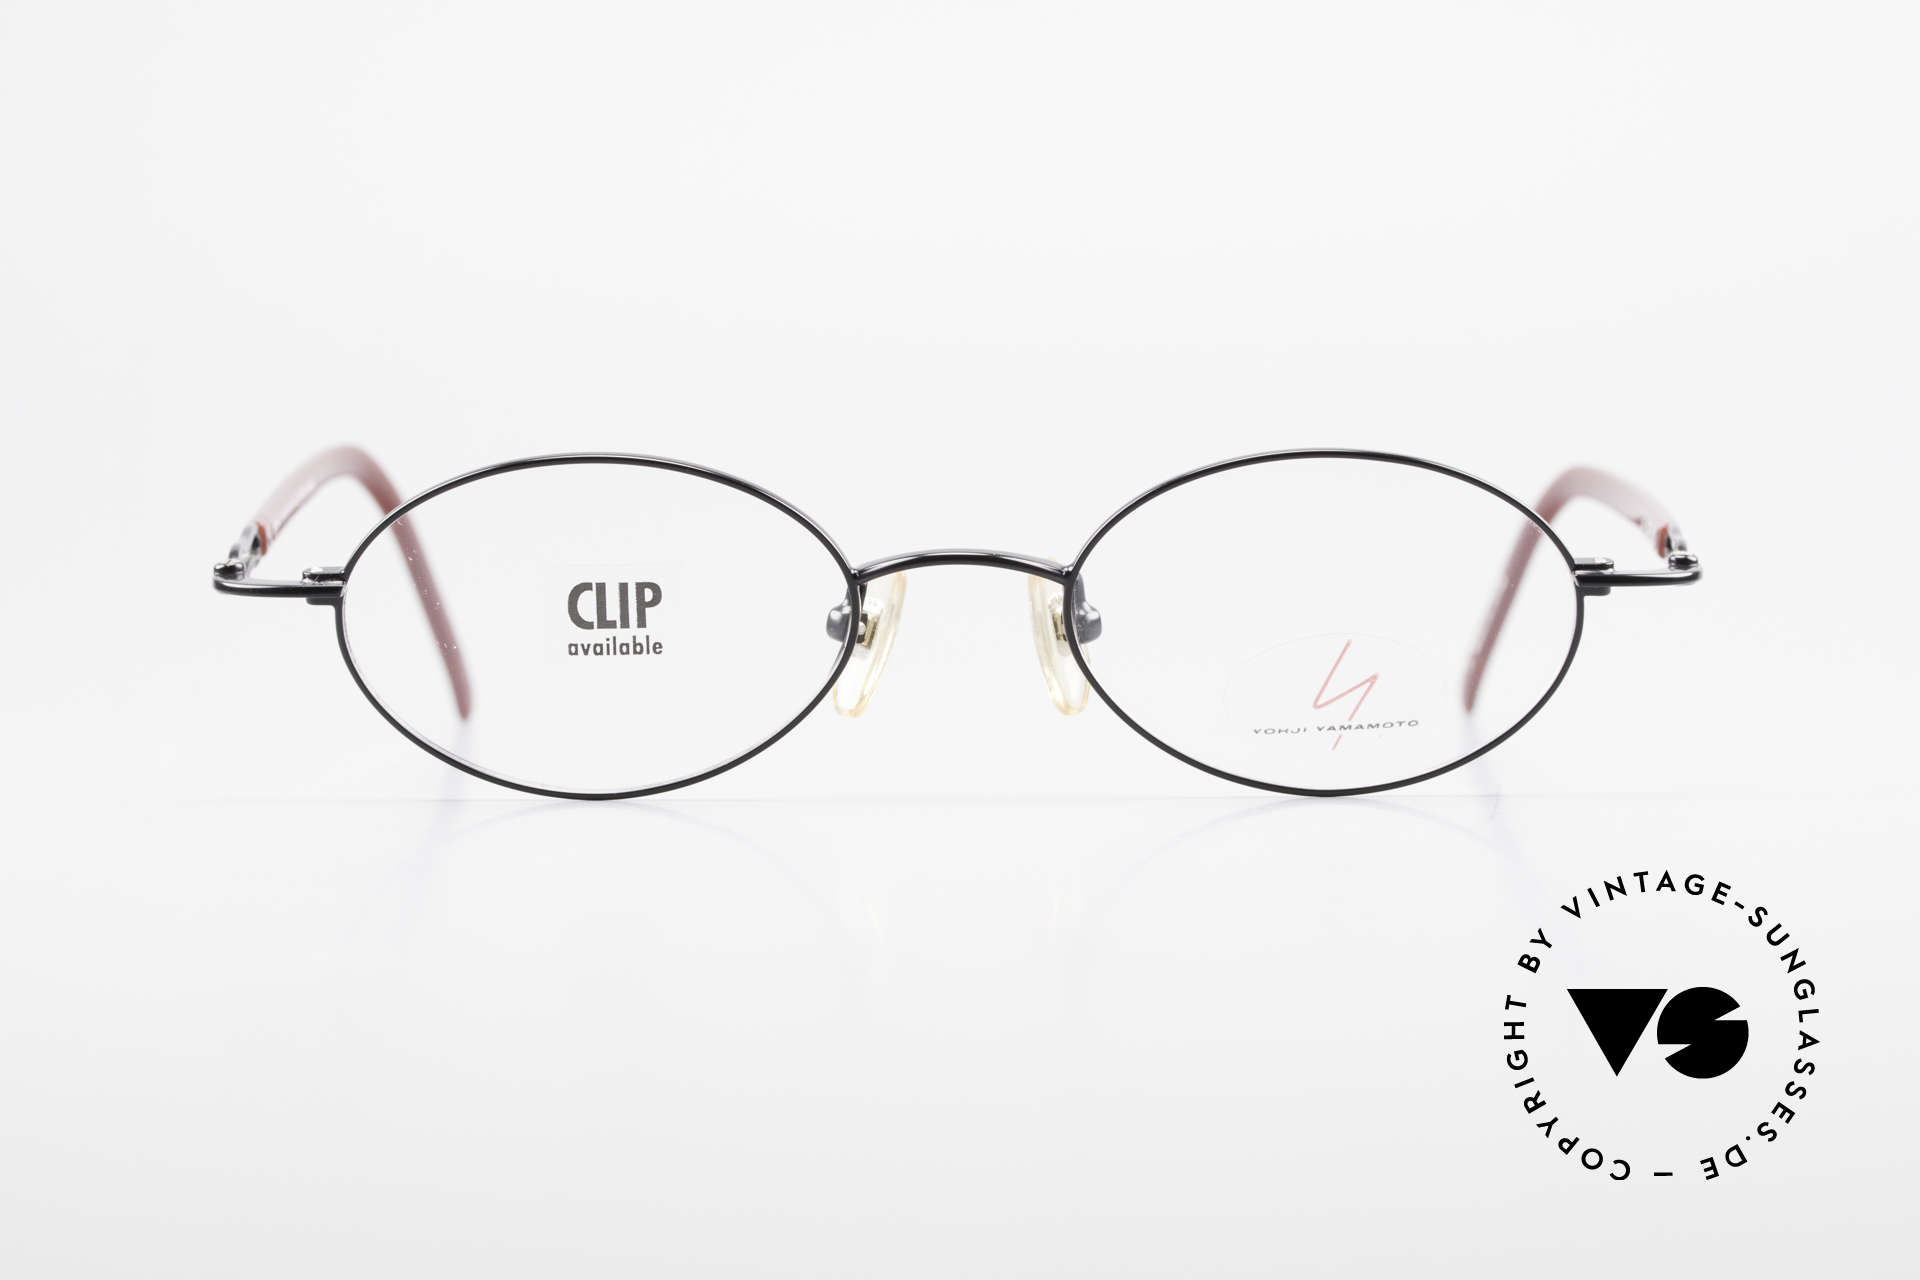 Yohji Yamamoto 51-8201 Oval Vintage Glasses Clip On, Size: medium, Made for Men and Women